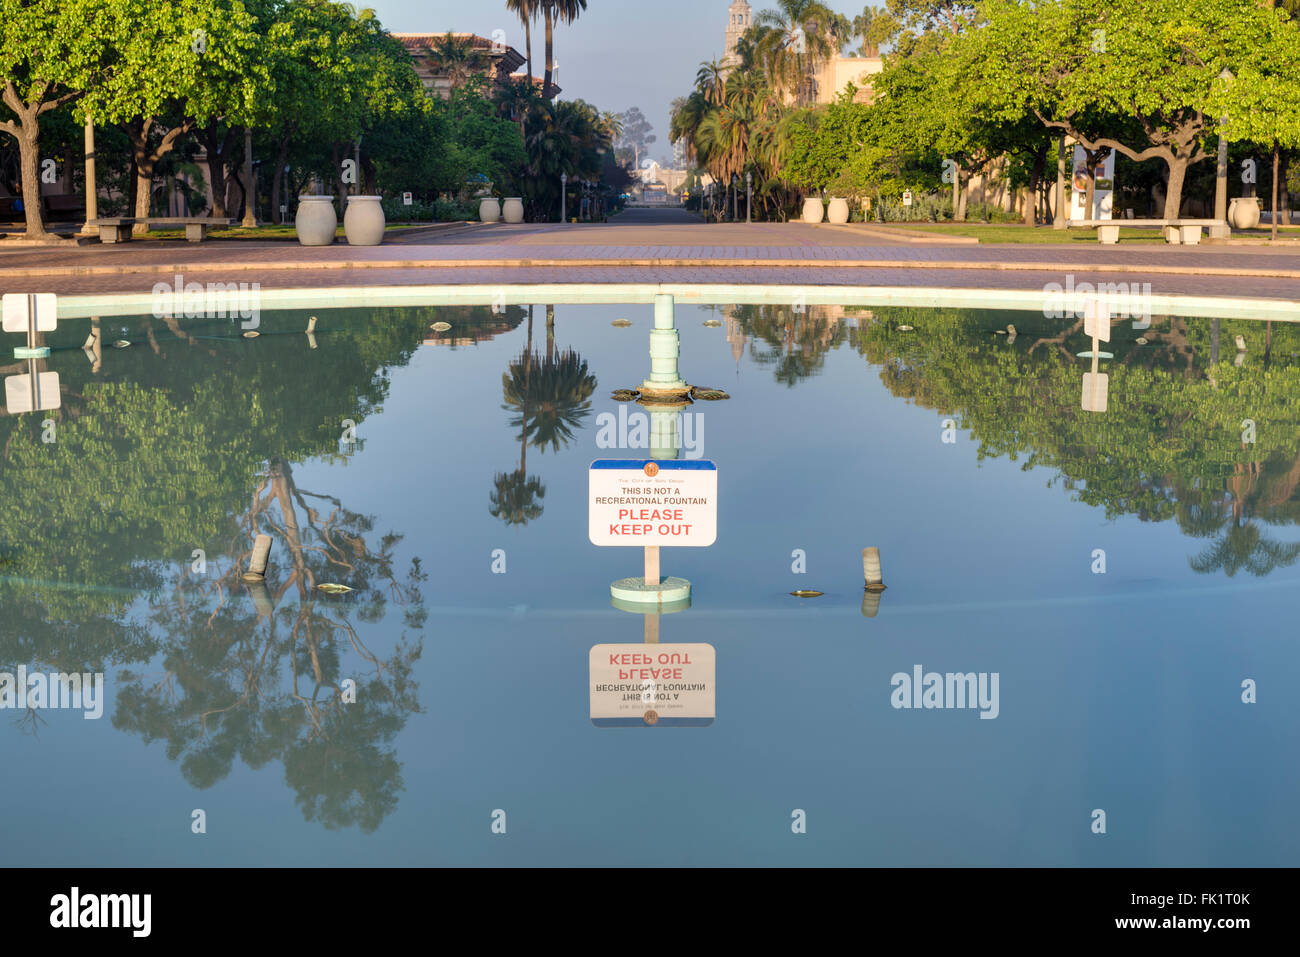 Bea Evenson Fountain. Balboa Park, San Diego, Kalifornien, USA. Stockbild